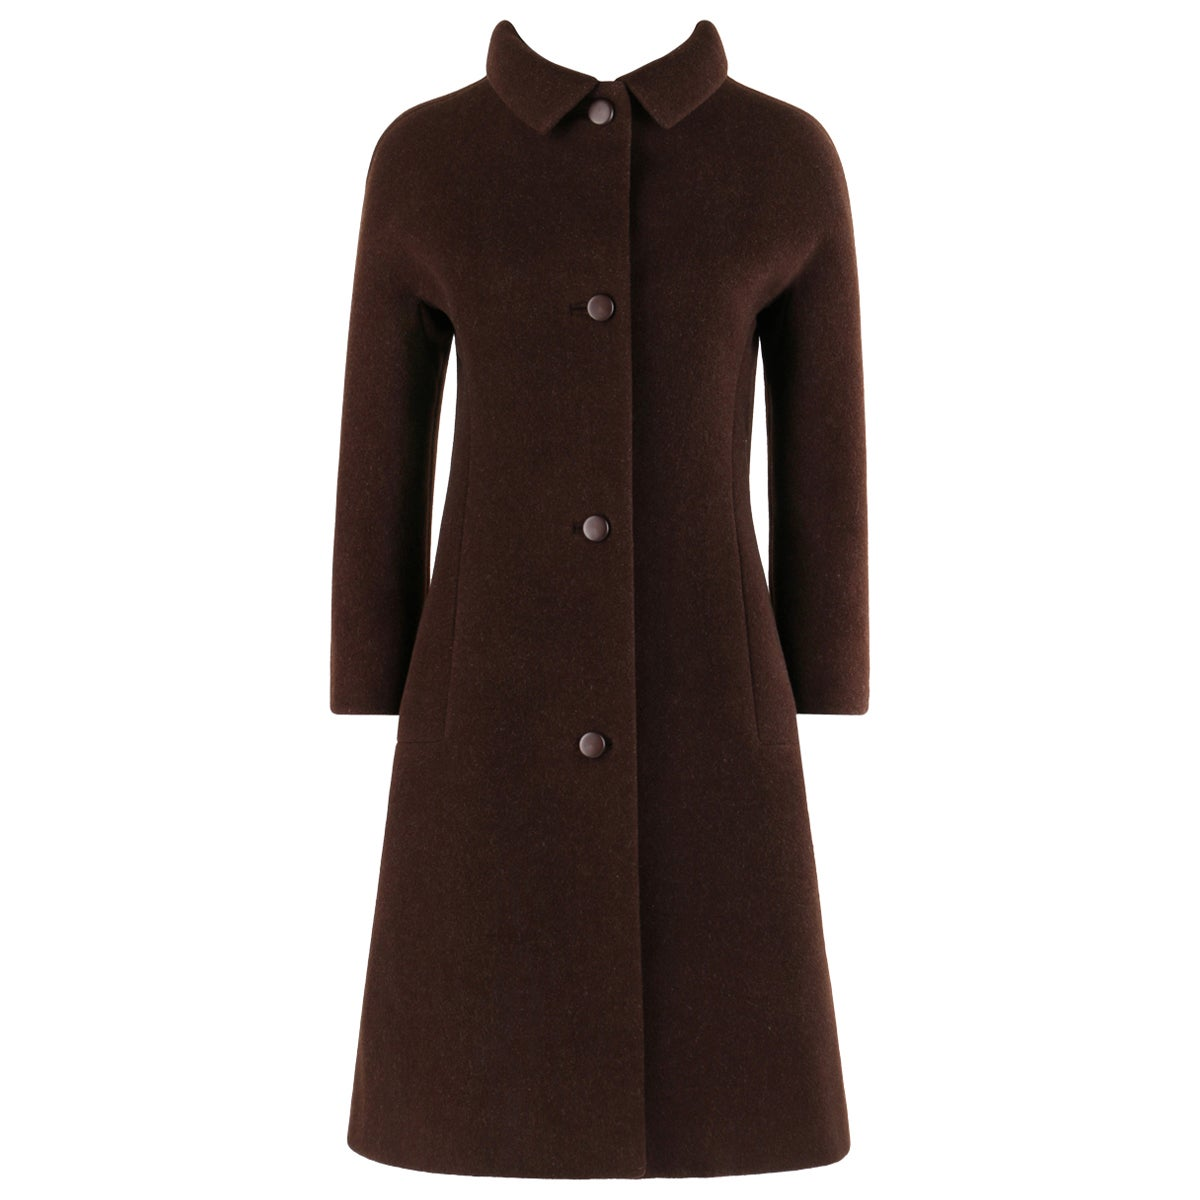 GIVENCHY c. 1960's Early Haute Couture Dark Brown Wool Princess Coat Jacket